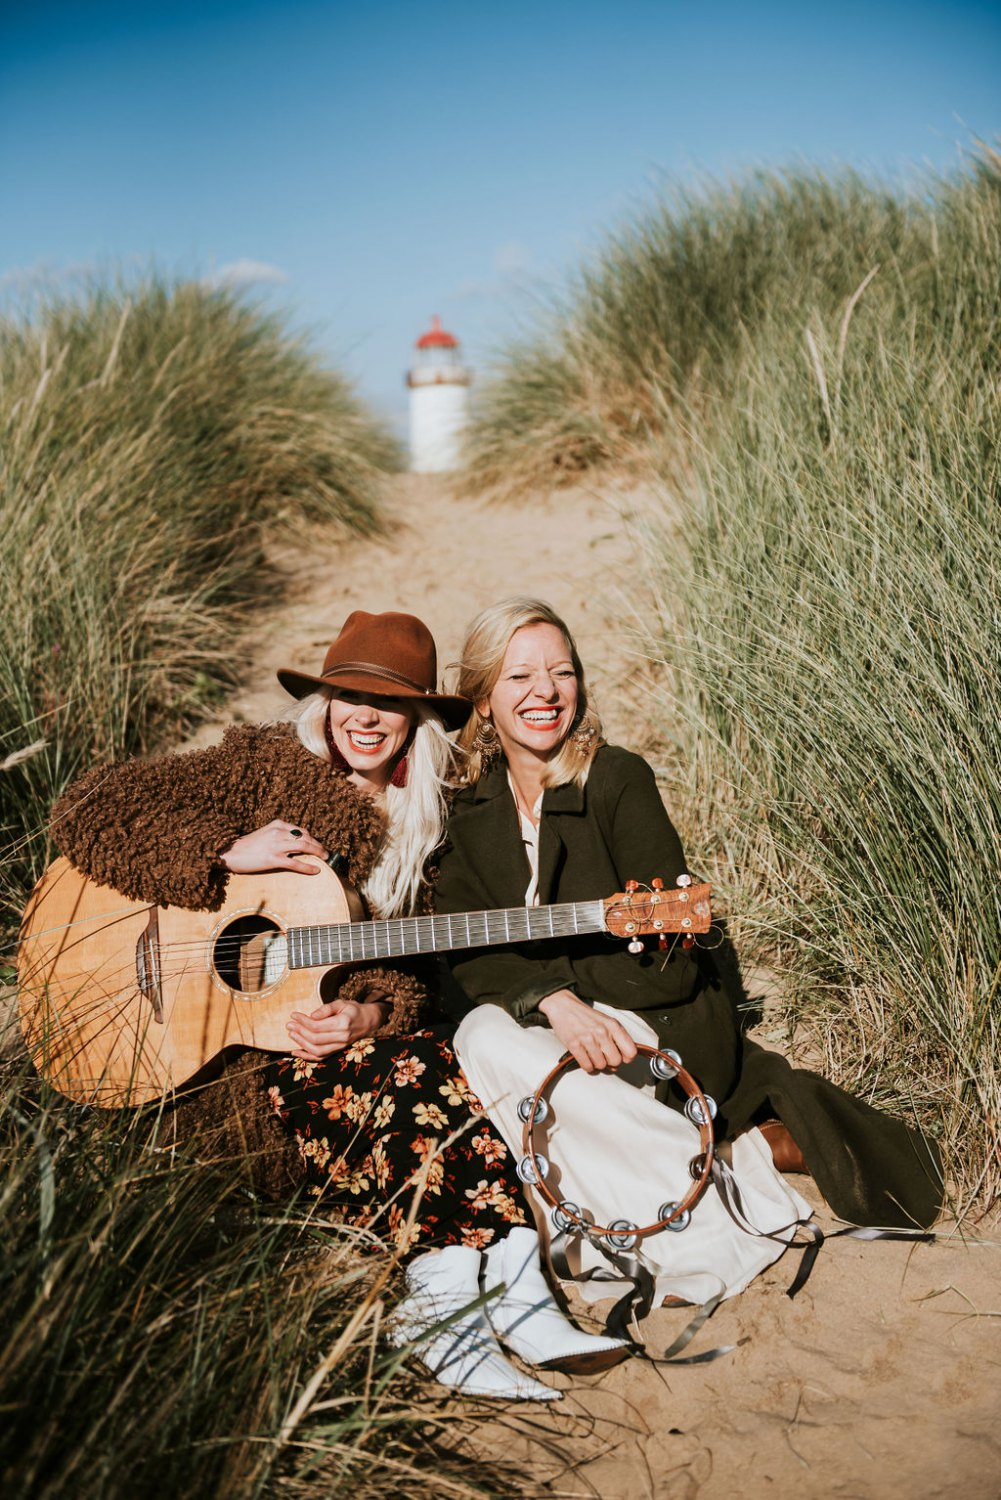 Two women with a guitar on the beach